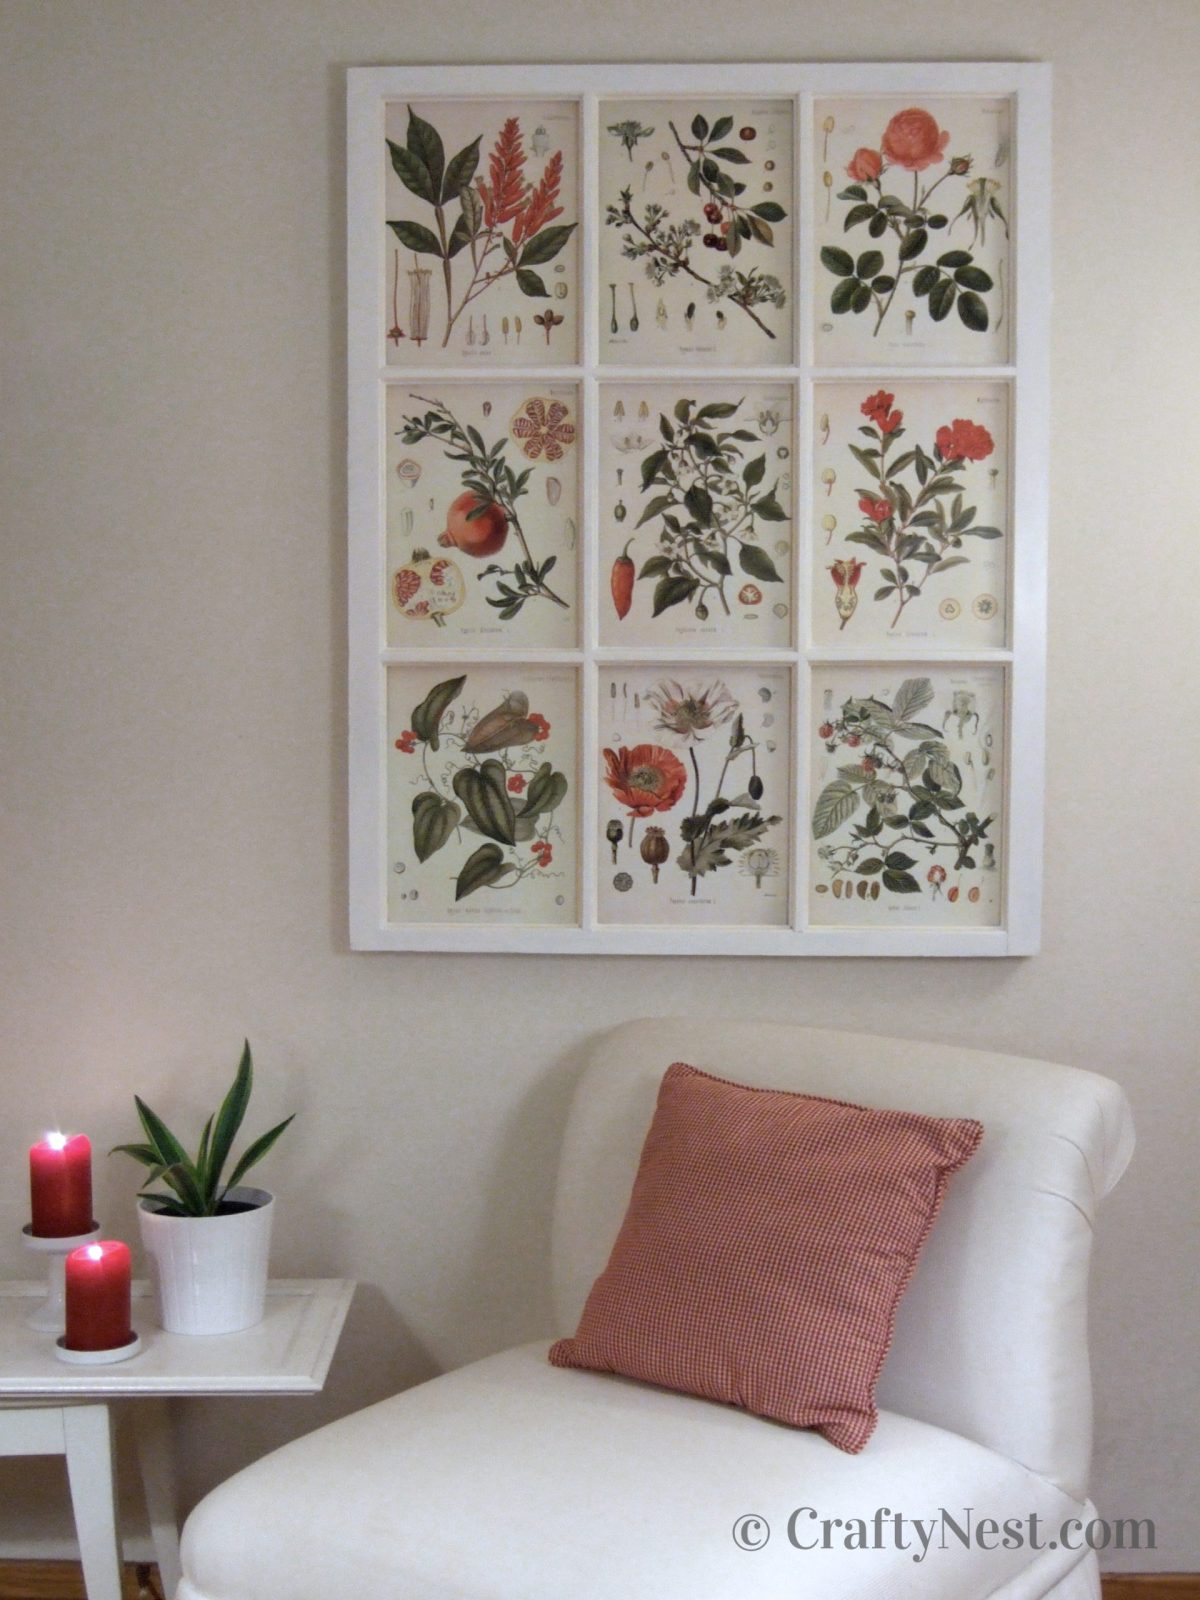 Bonical illustrations framed in a salvaged window, photo